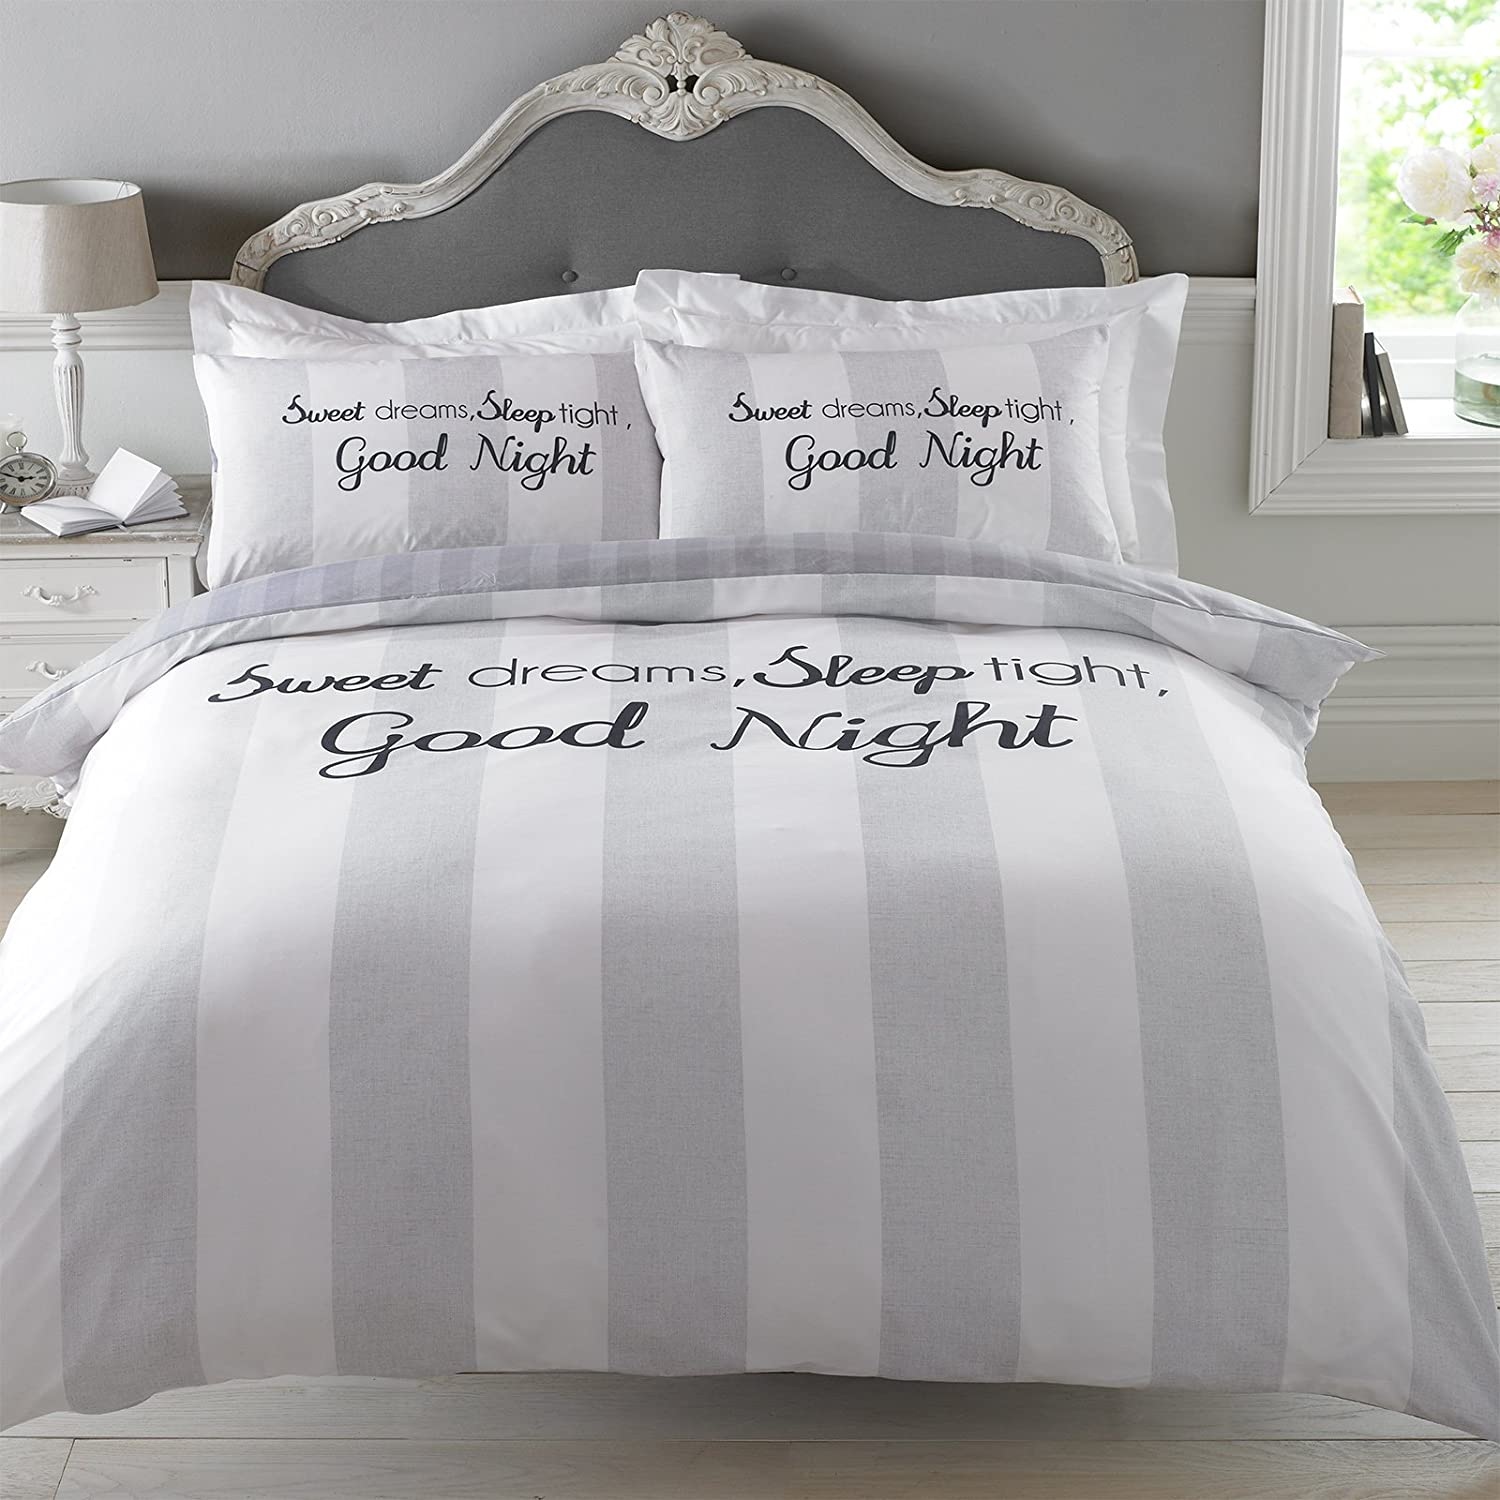 beddingblue beddingblack gray make blue and bed full bedroom size white will yellow black concept that picture your pop of stirring bedding